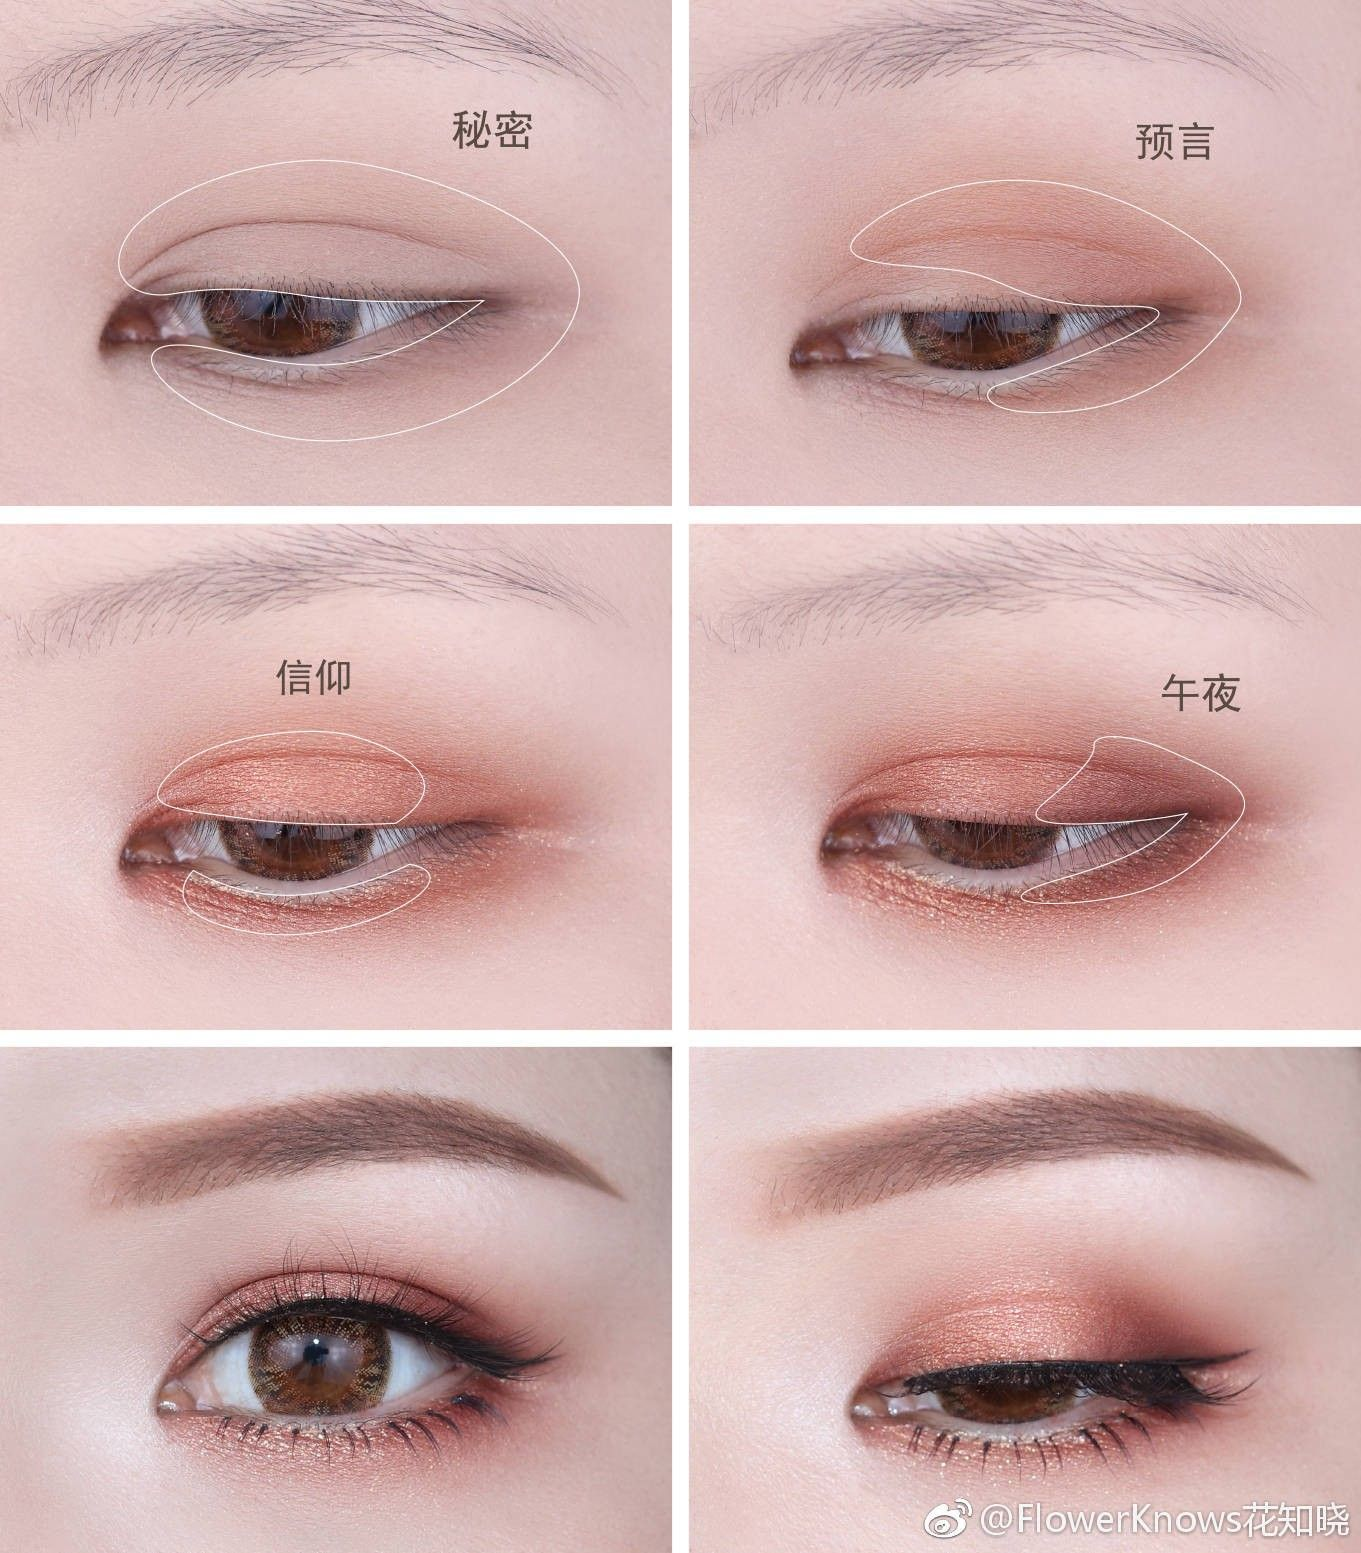 Ad 1 Notitle Eyemakeupaesthetic Eyemakeuplooks